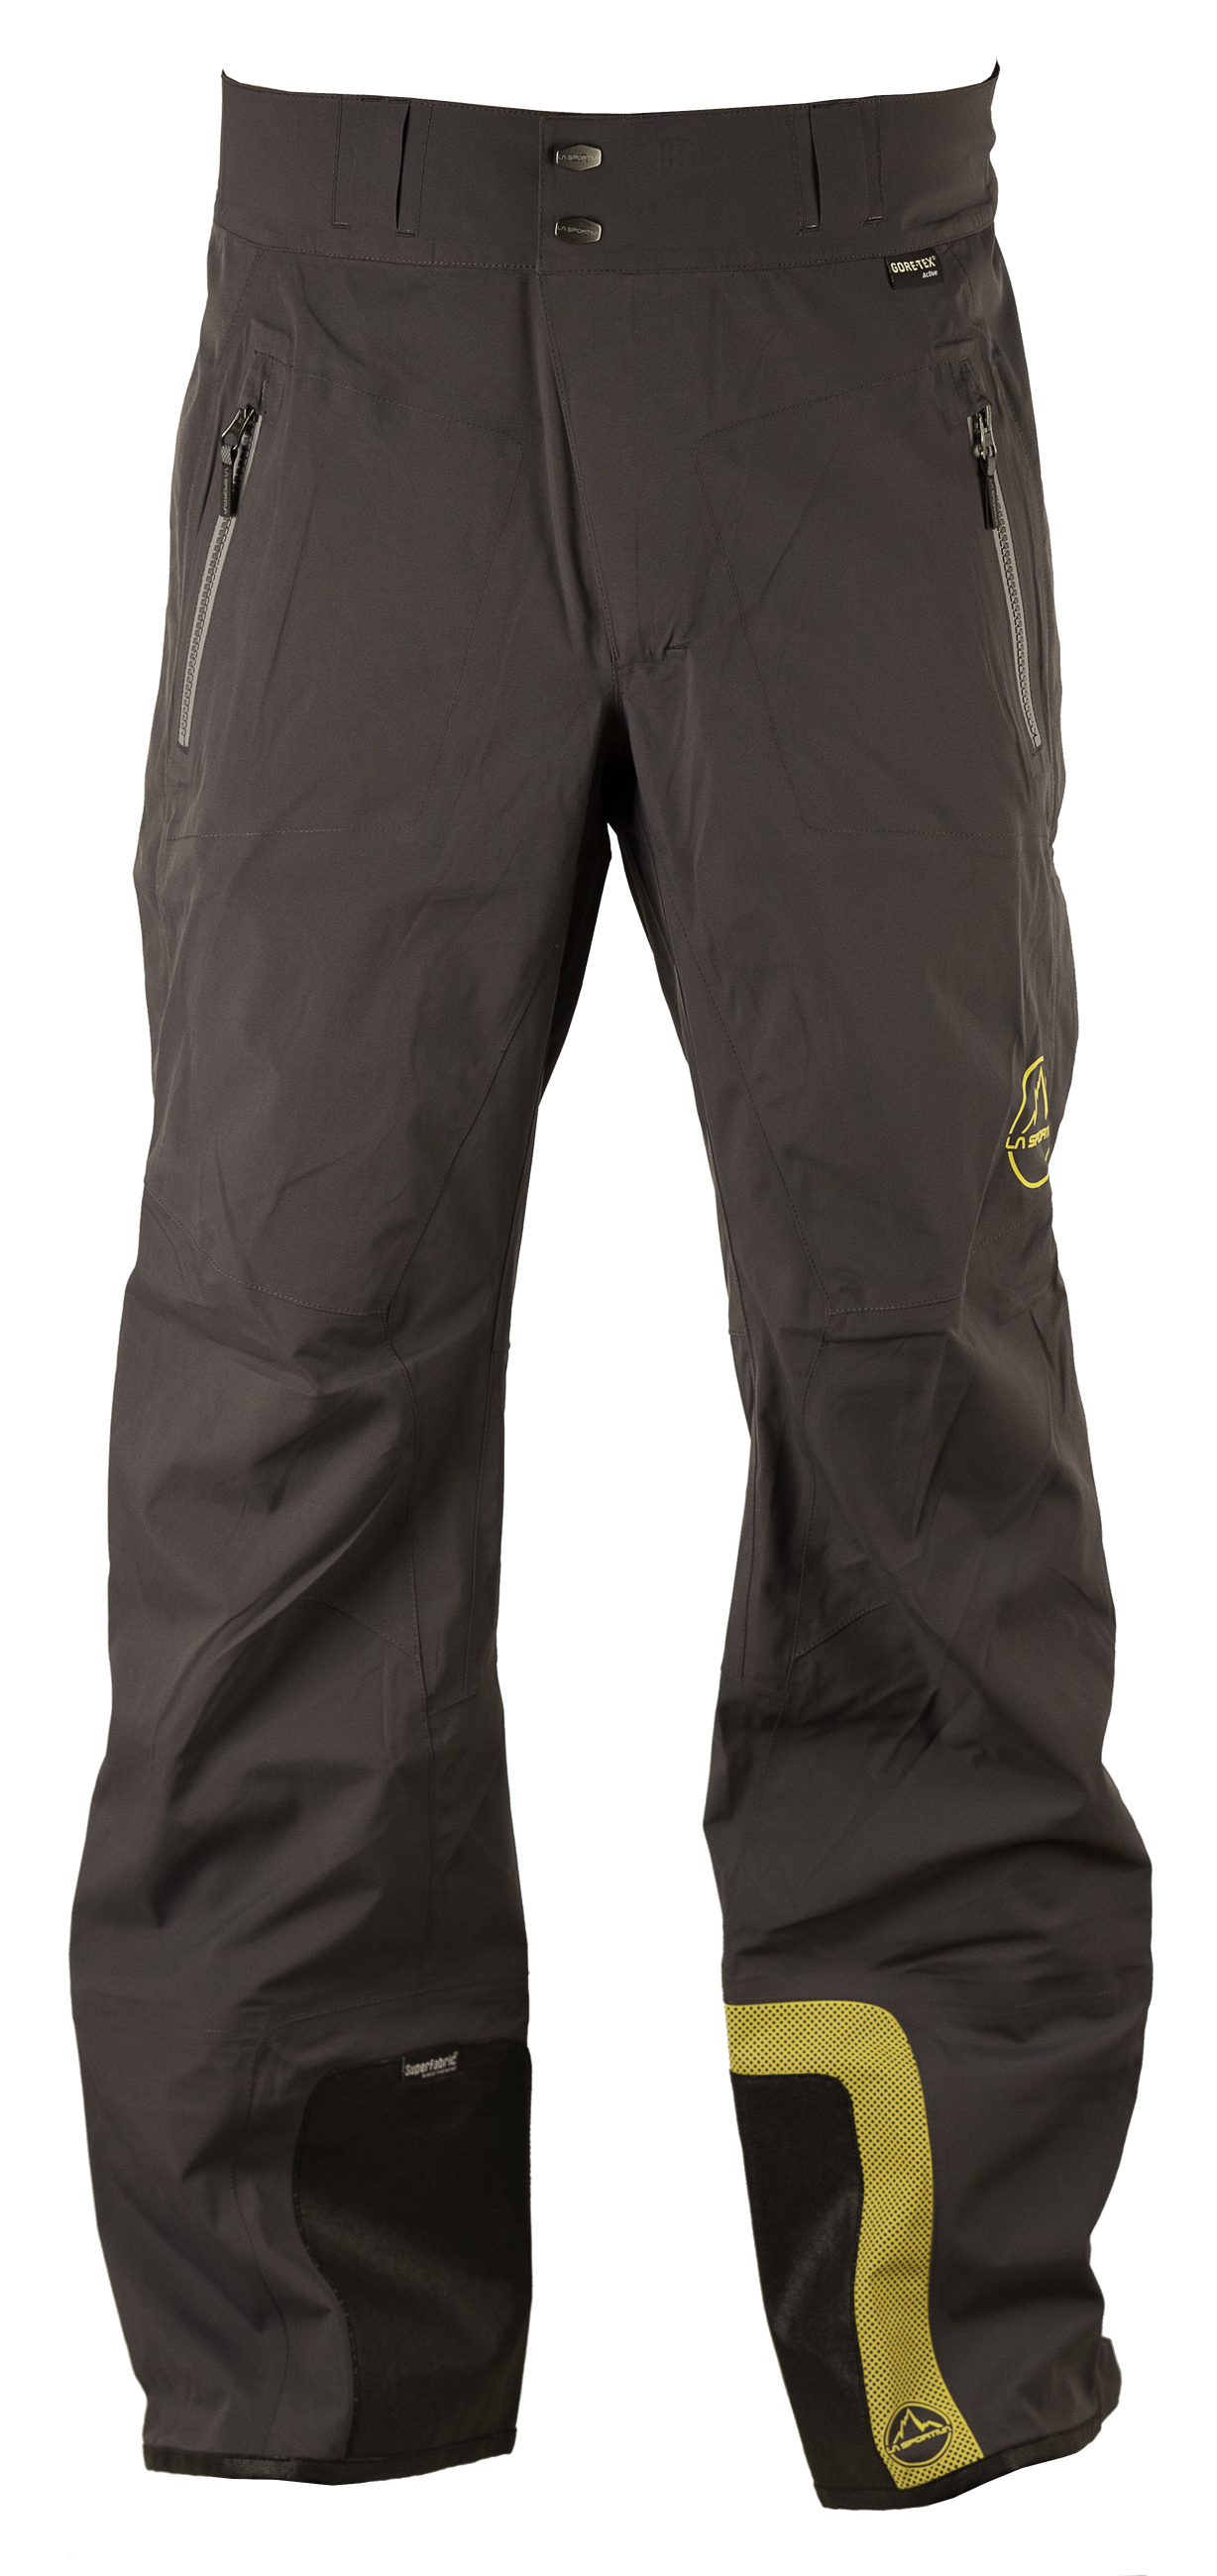 La Sportiva Storm Fighter GTX pants